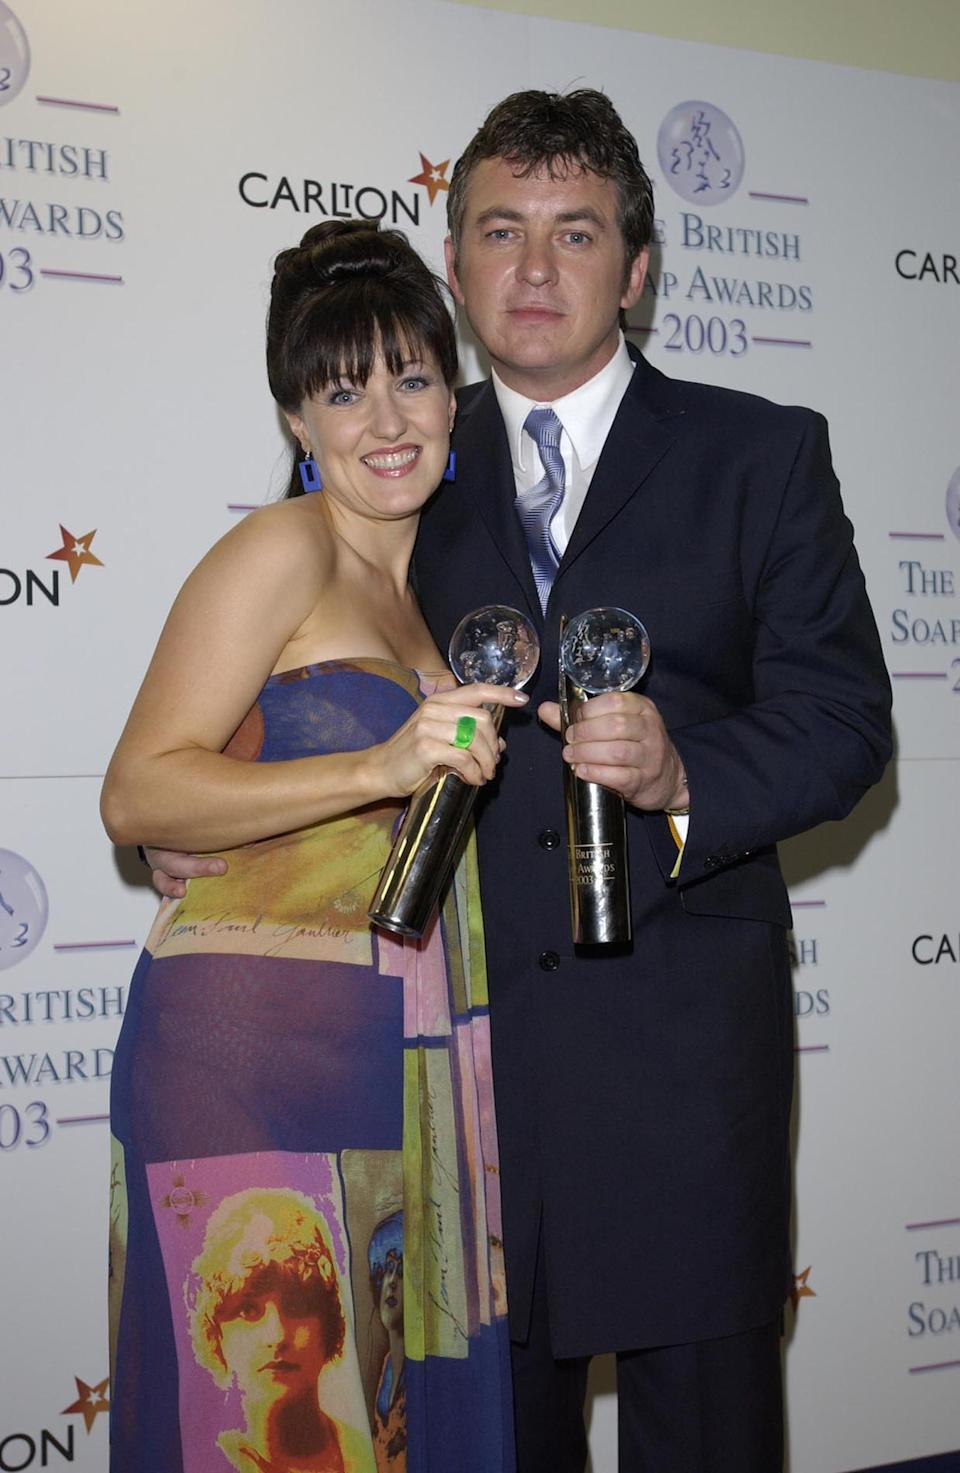 LONDON - MAY 10:  Television soap stars Kasey Ainsworth and Shane Richie in the press room at BBC Television Centre in West London on May 10, 2003 after the 5th Annual British TV Soap Awards. Ainsworth won the Best Actress award for her part as Little Mo in Eastenders, Richie won Sexiest Male. (Photo by Steve Finn/Getty Images)